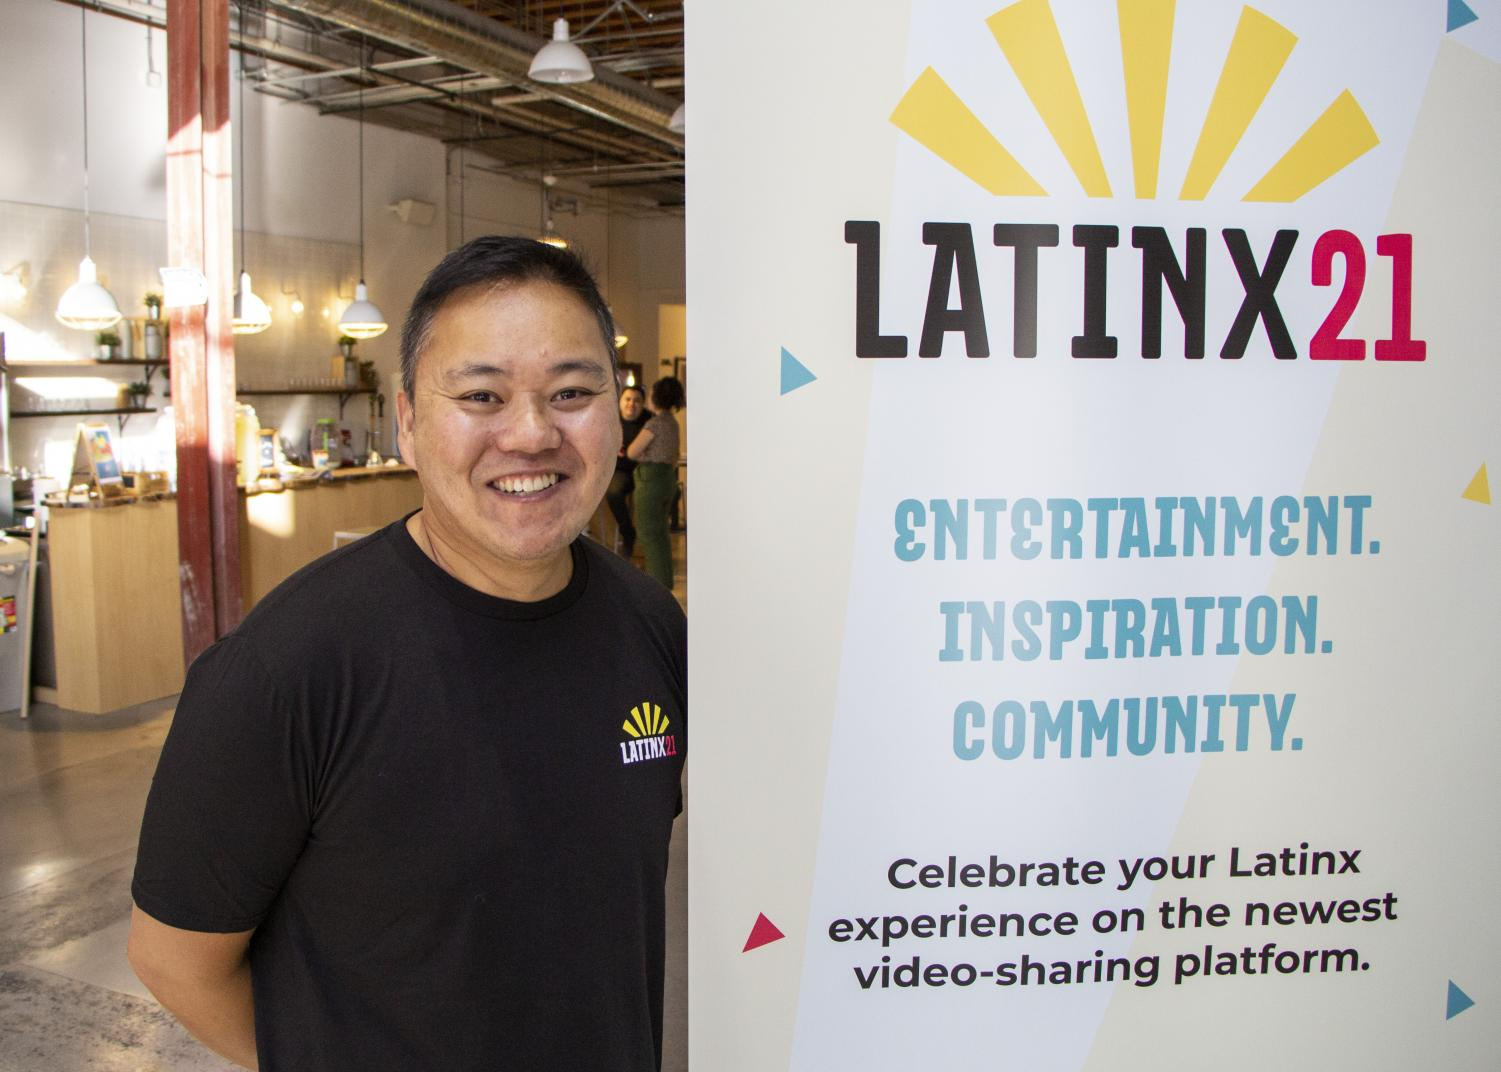 Joe Bautista, the head of Intersect LA focuses on branding and creative strategy for Latinx21. Photo credit: Tim Strong